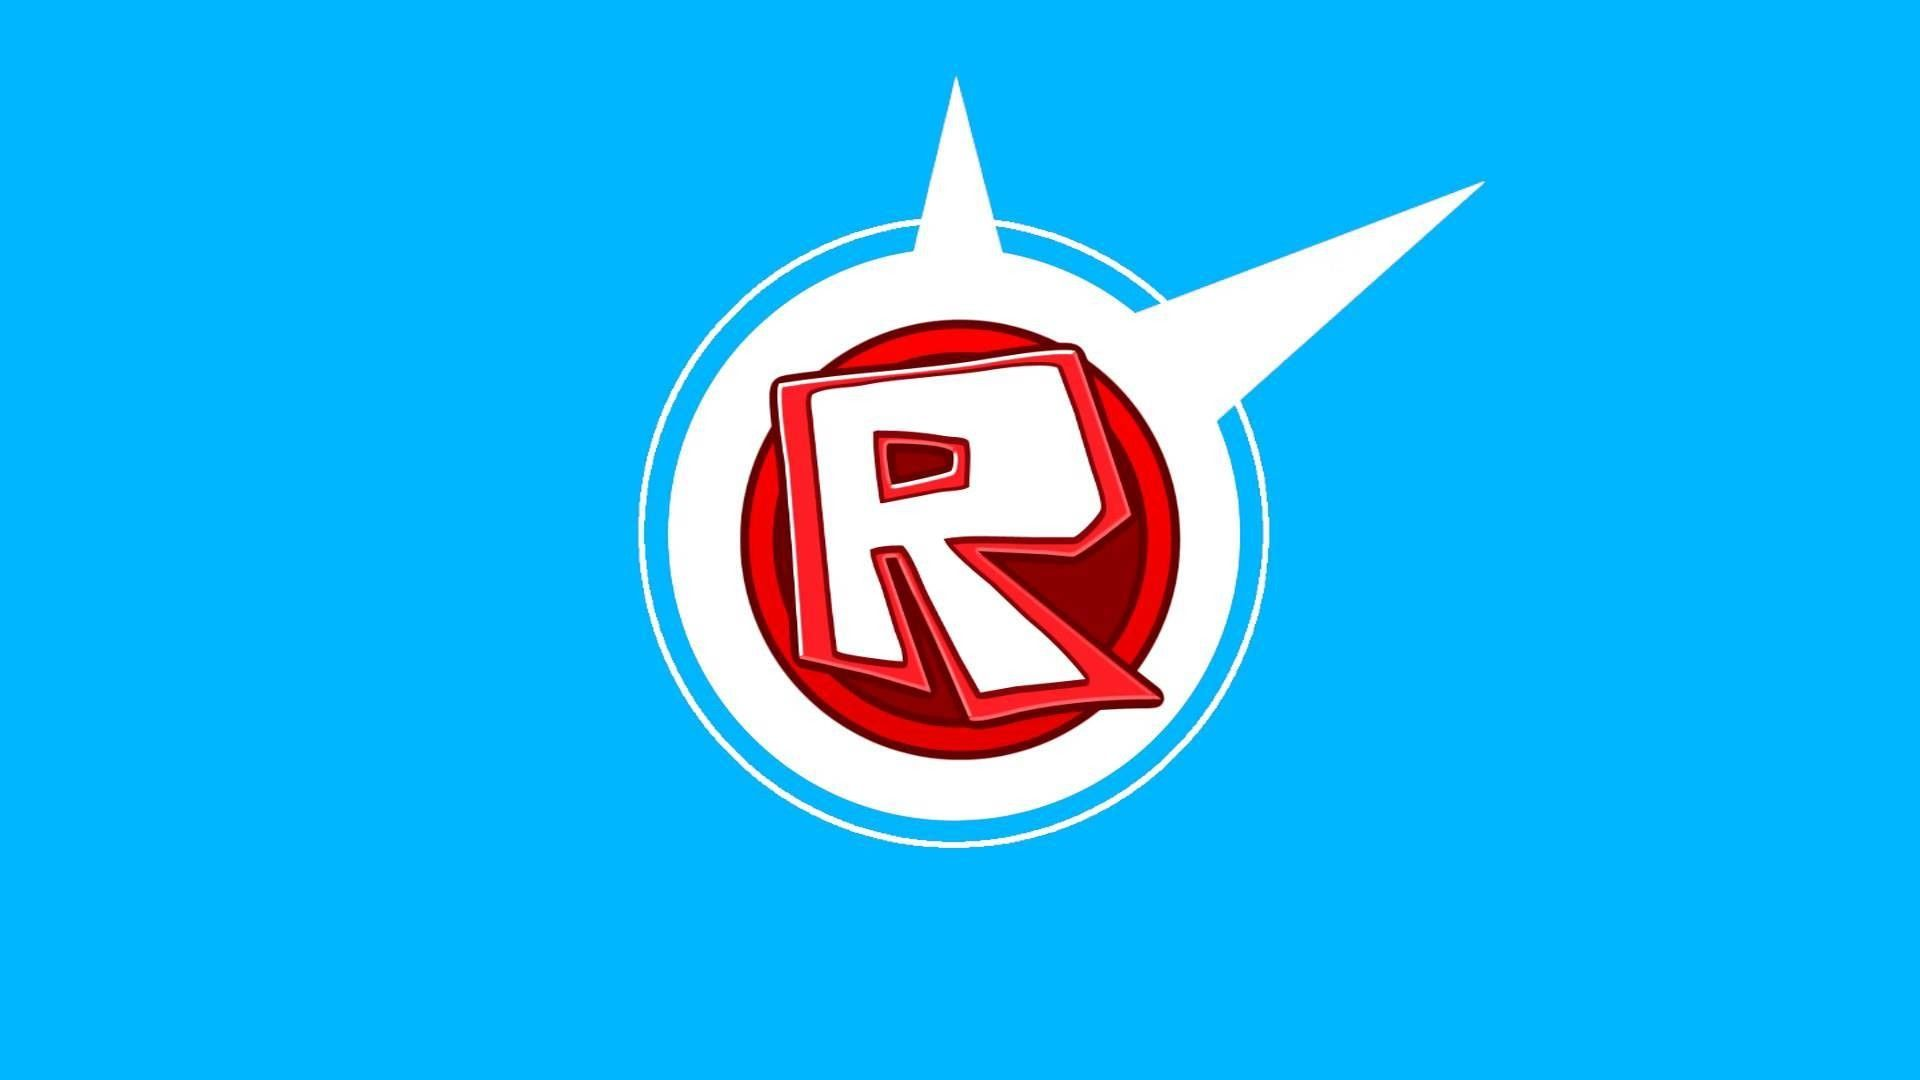 Roblox Logo Wallpapers Top Free Roblox Logo Backgrounds Wallpaperaccess